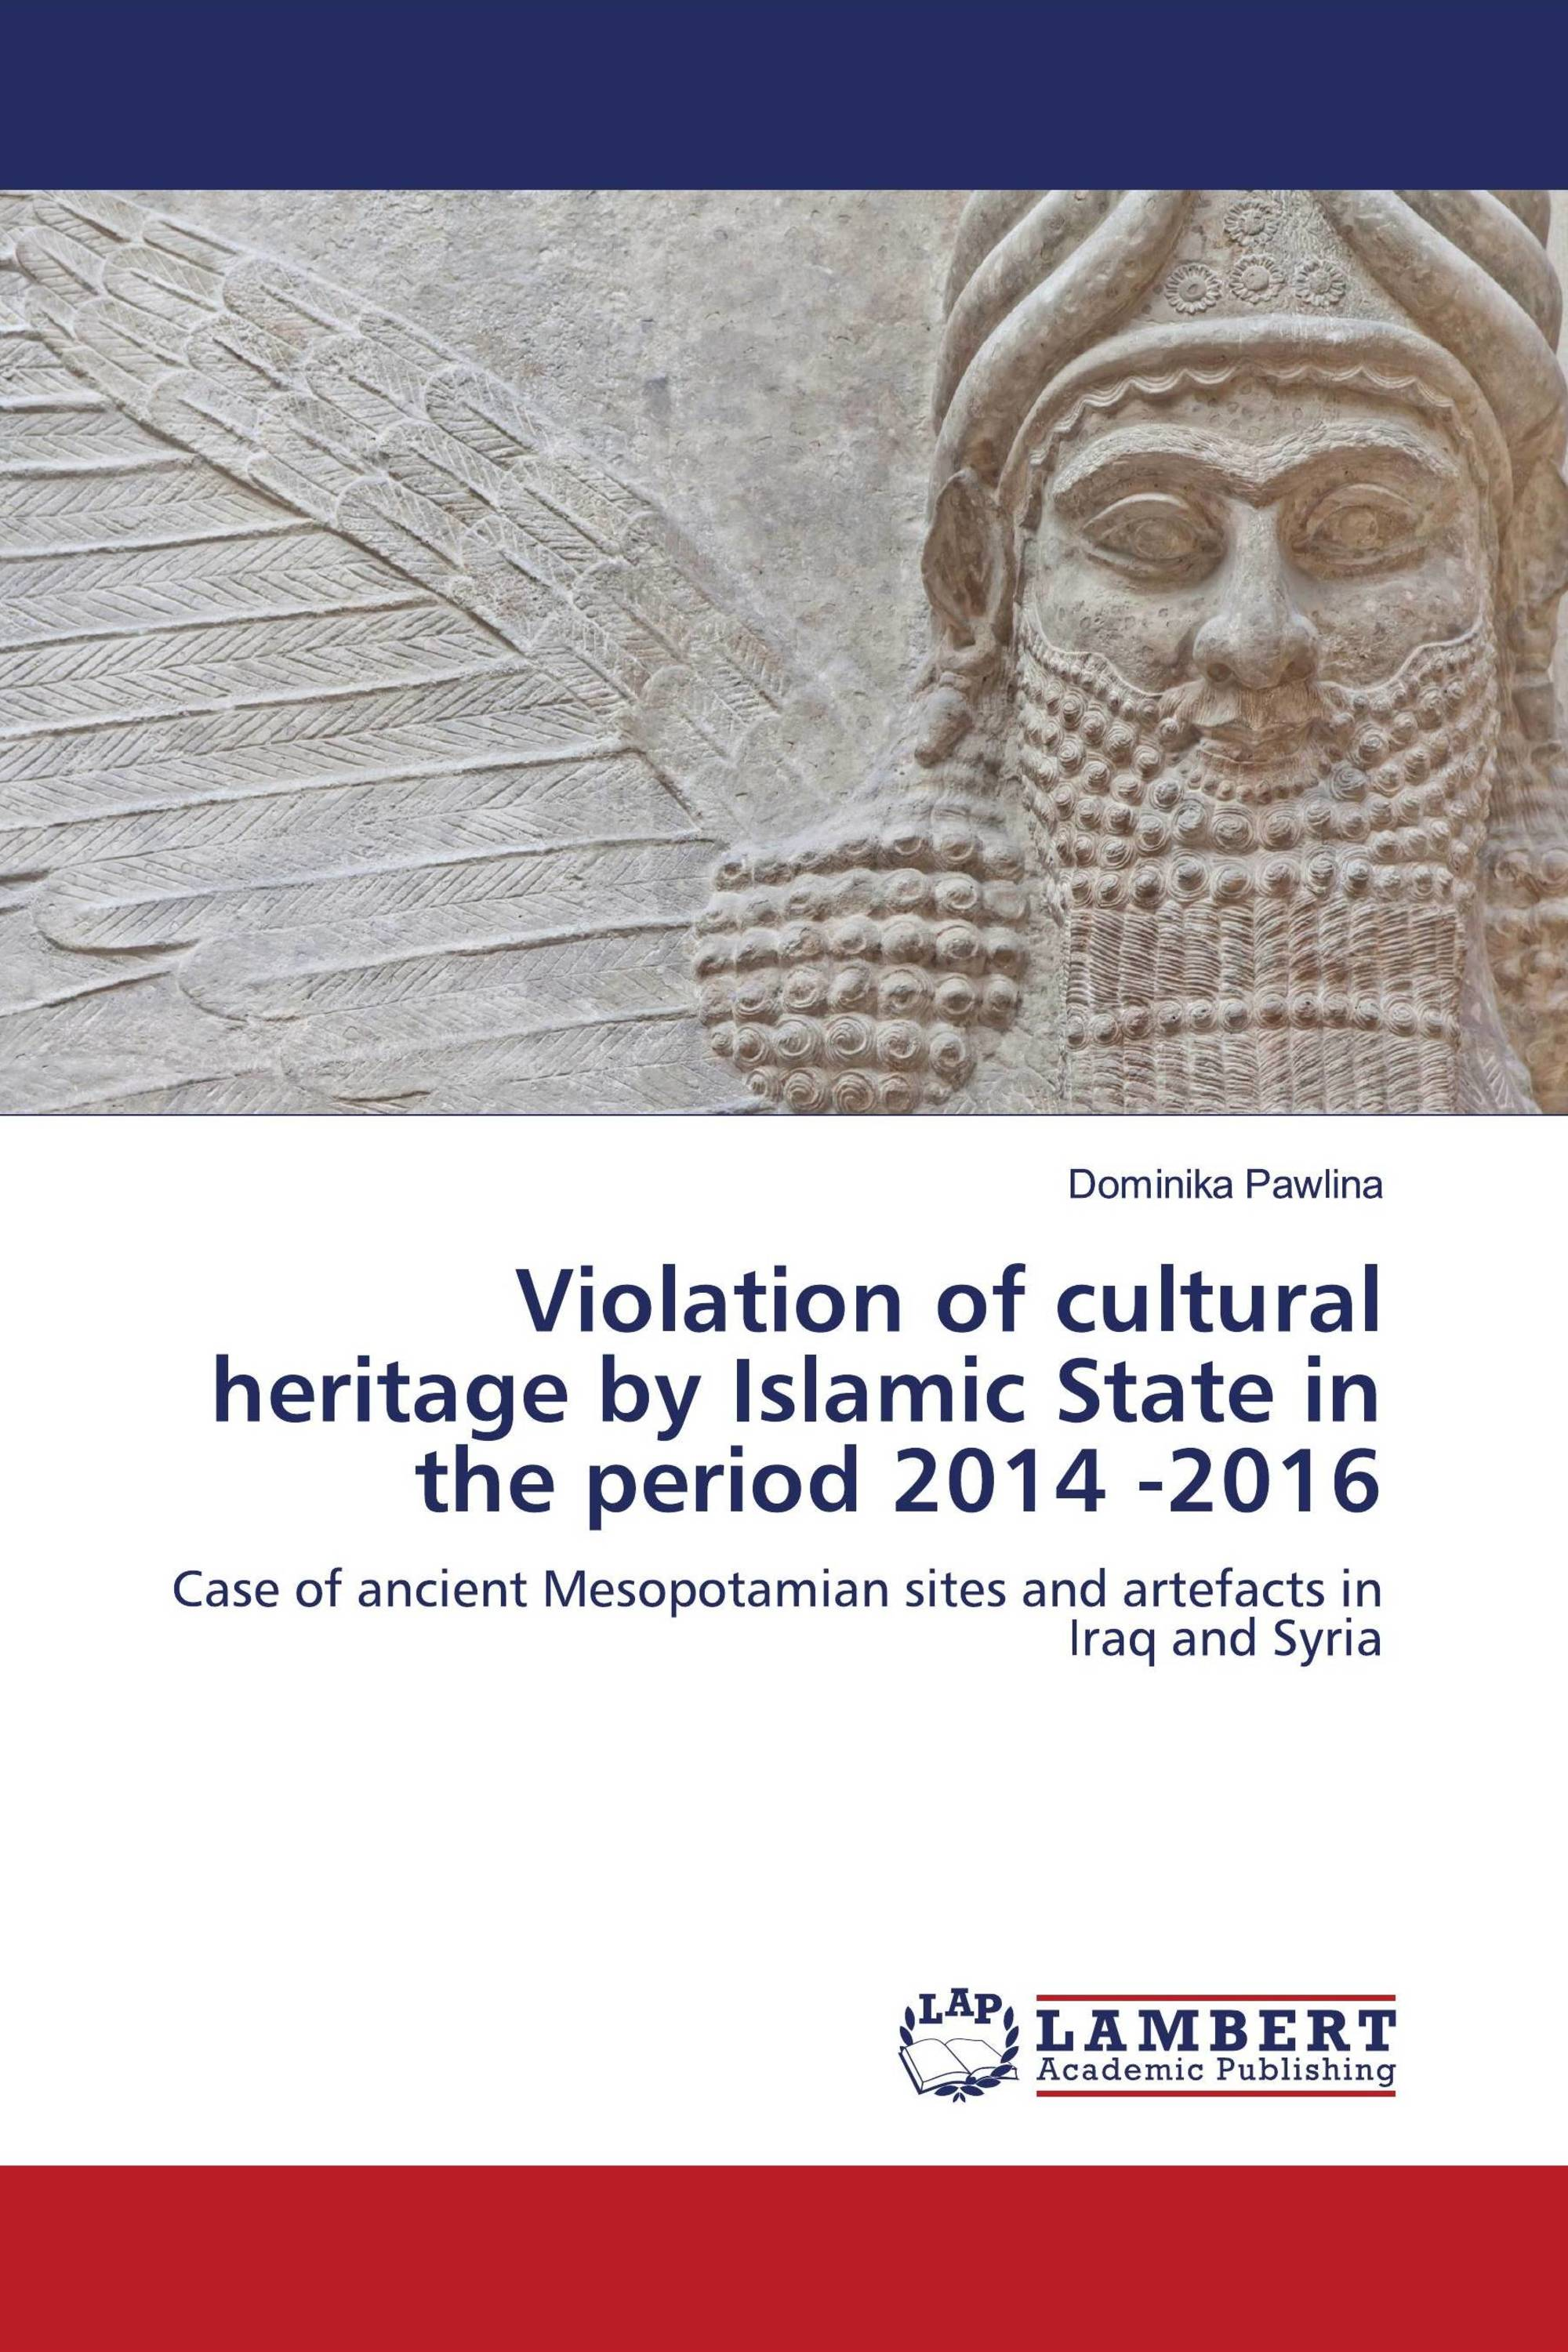 Violation of cultural heritage by Islamic State in the period 2014 -2016